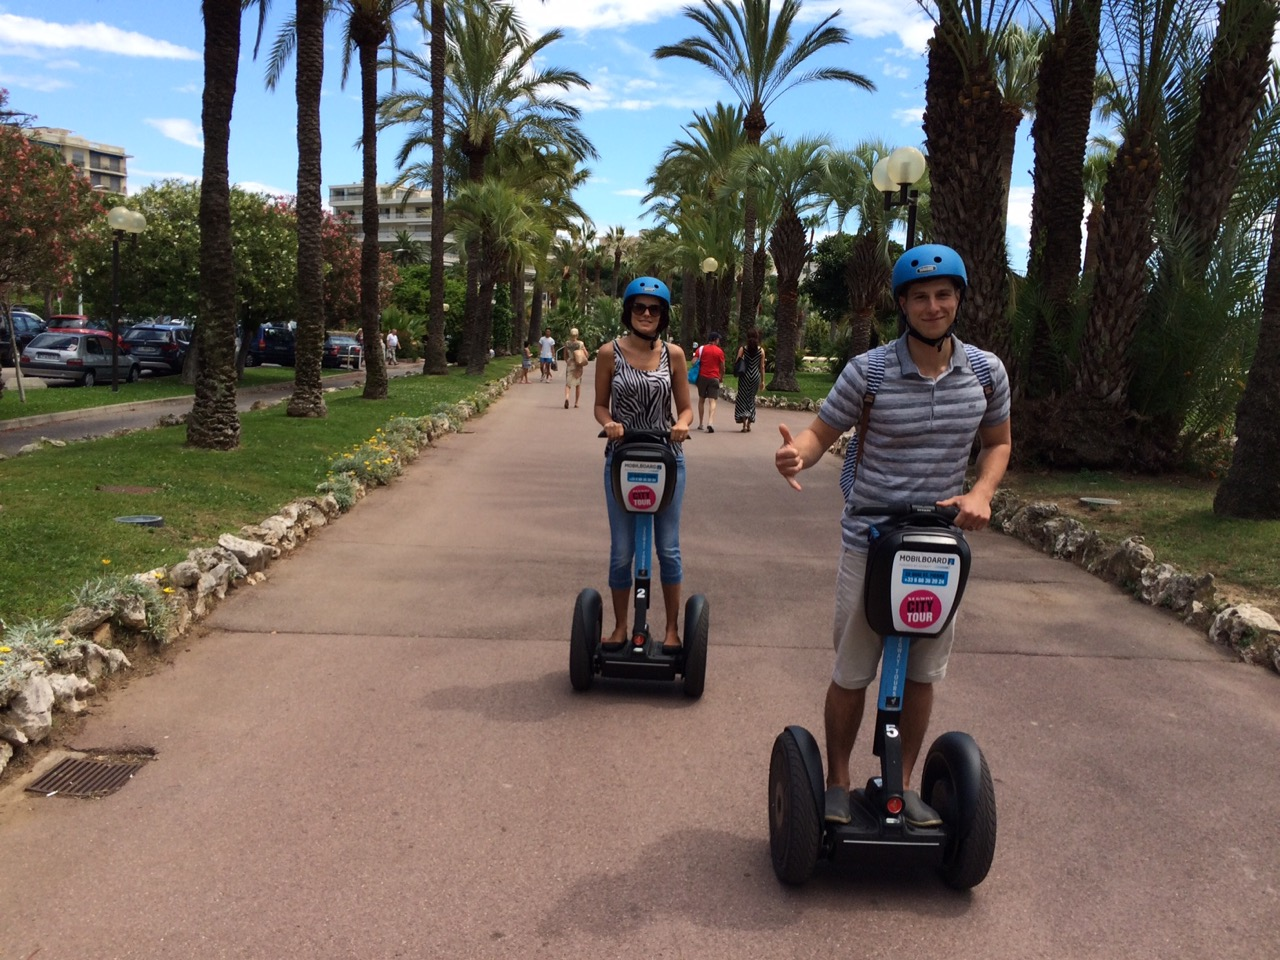 City Tour by MobilBoard Segway Cannes - Return to the shade of the palm trees, direction Le Suquet and its alleys